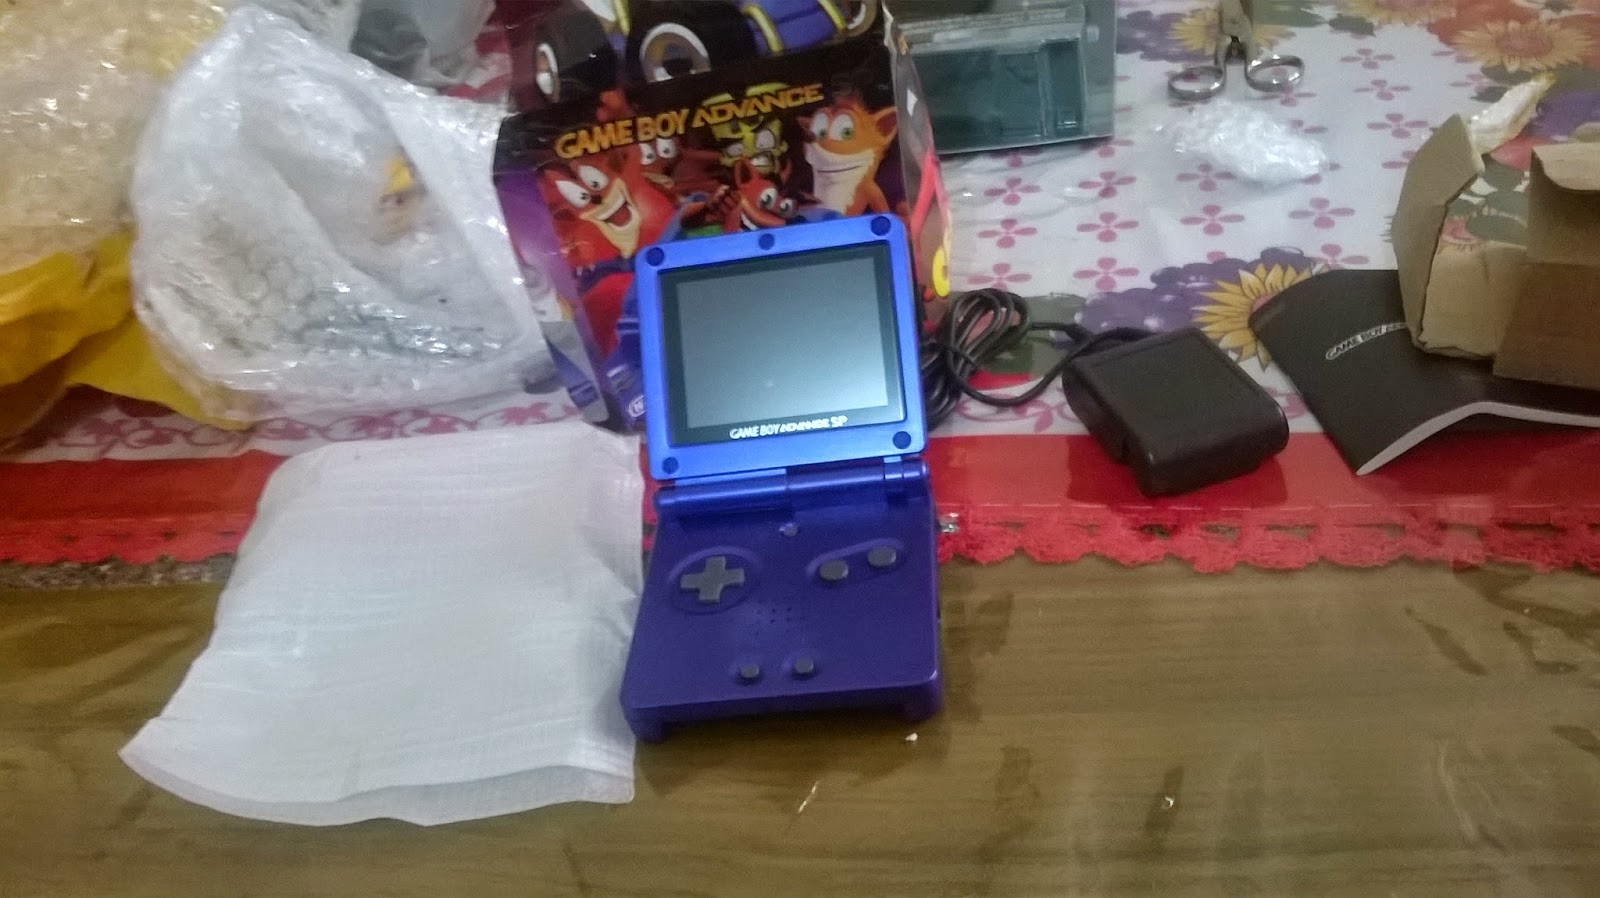 Game boy color quanto vale - An Lise Game Boy Advance Chin S Com 99 999 Jogos